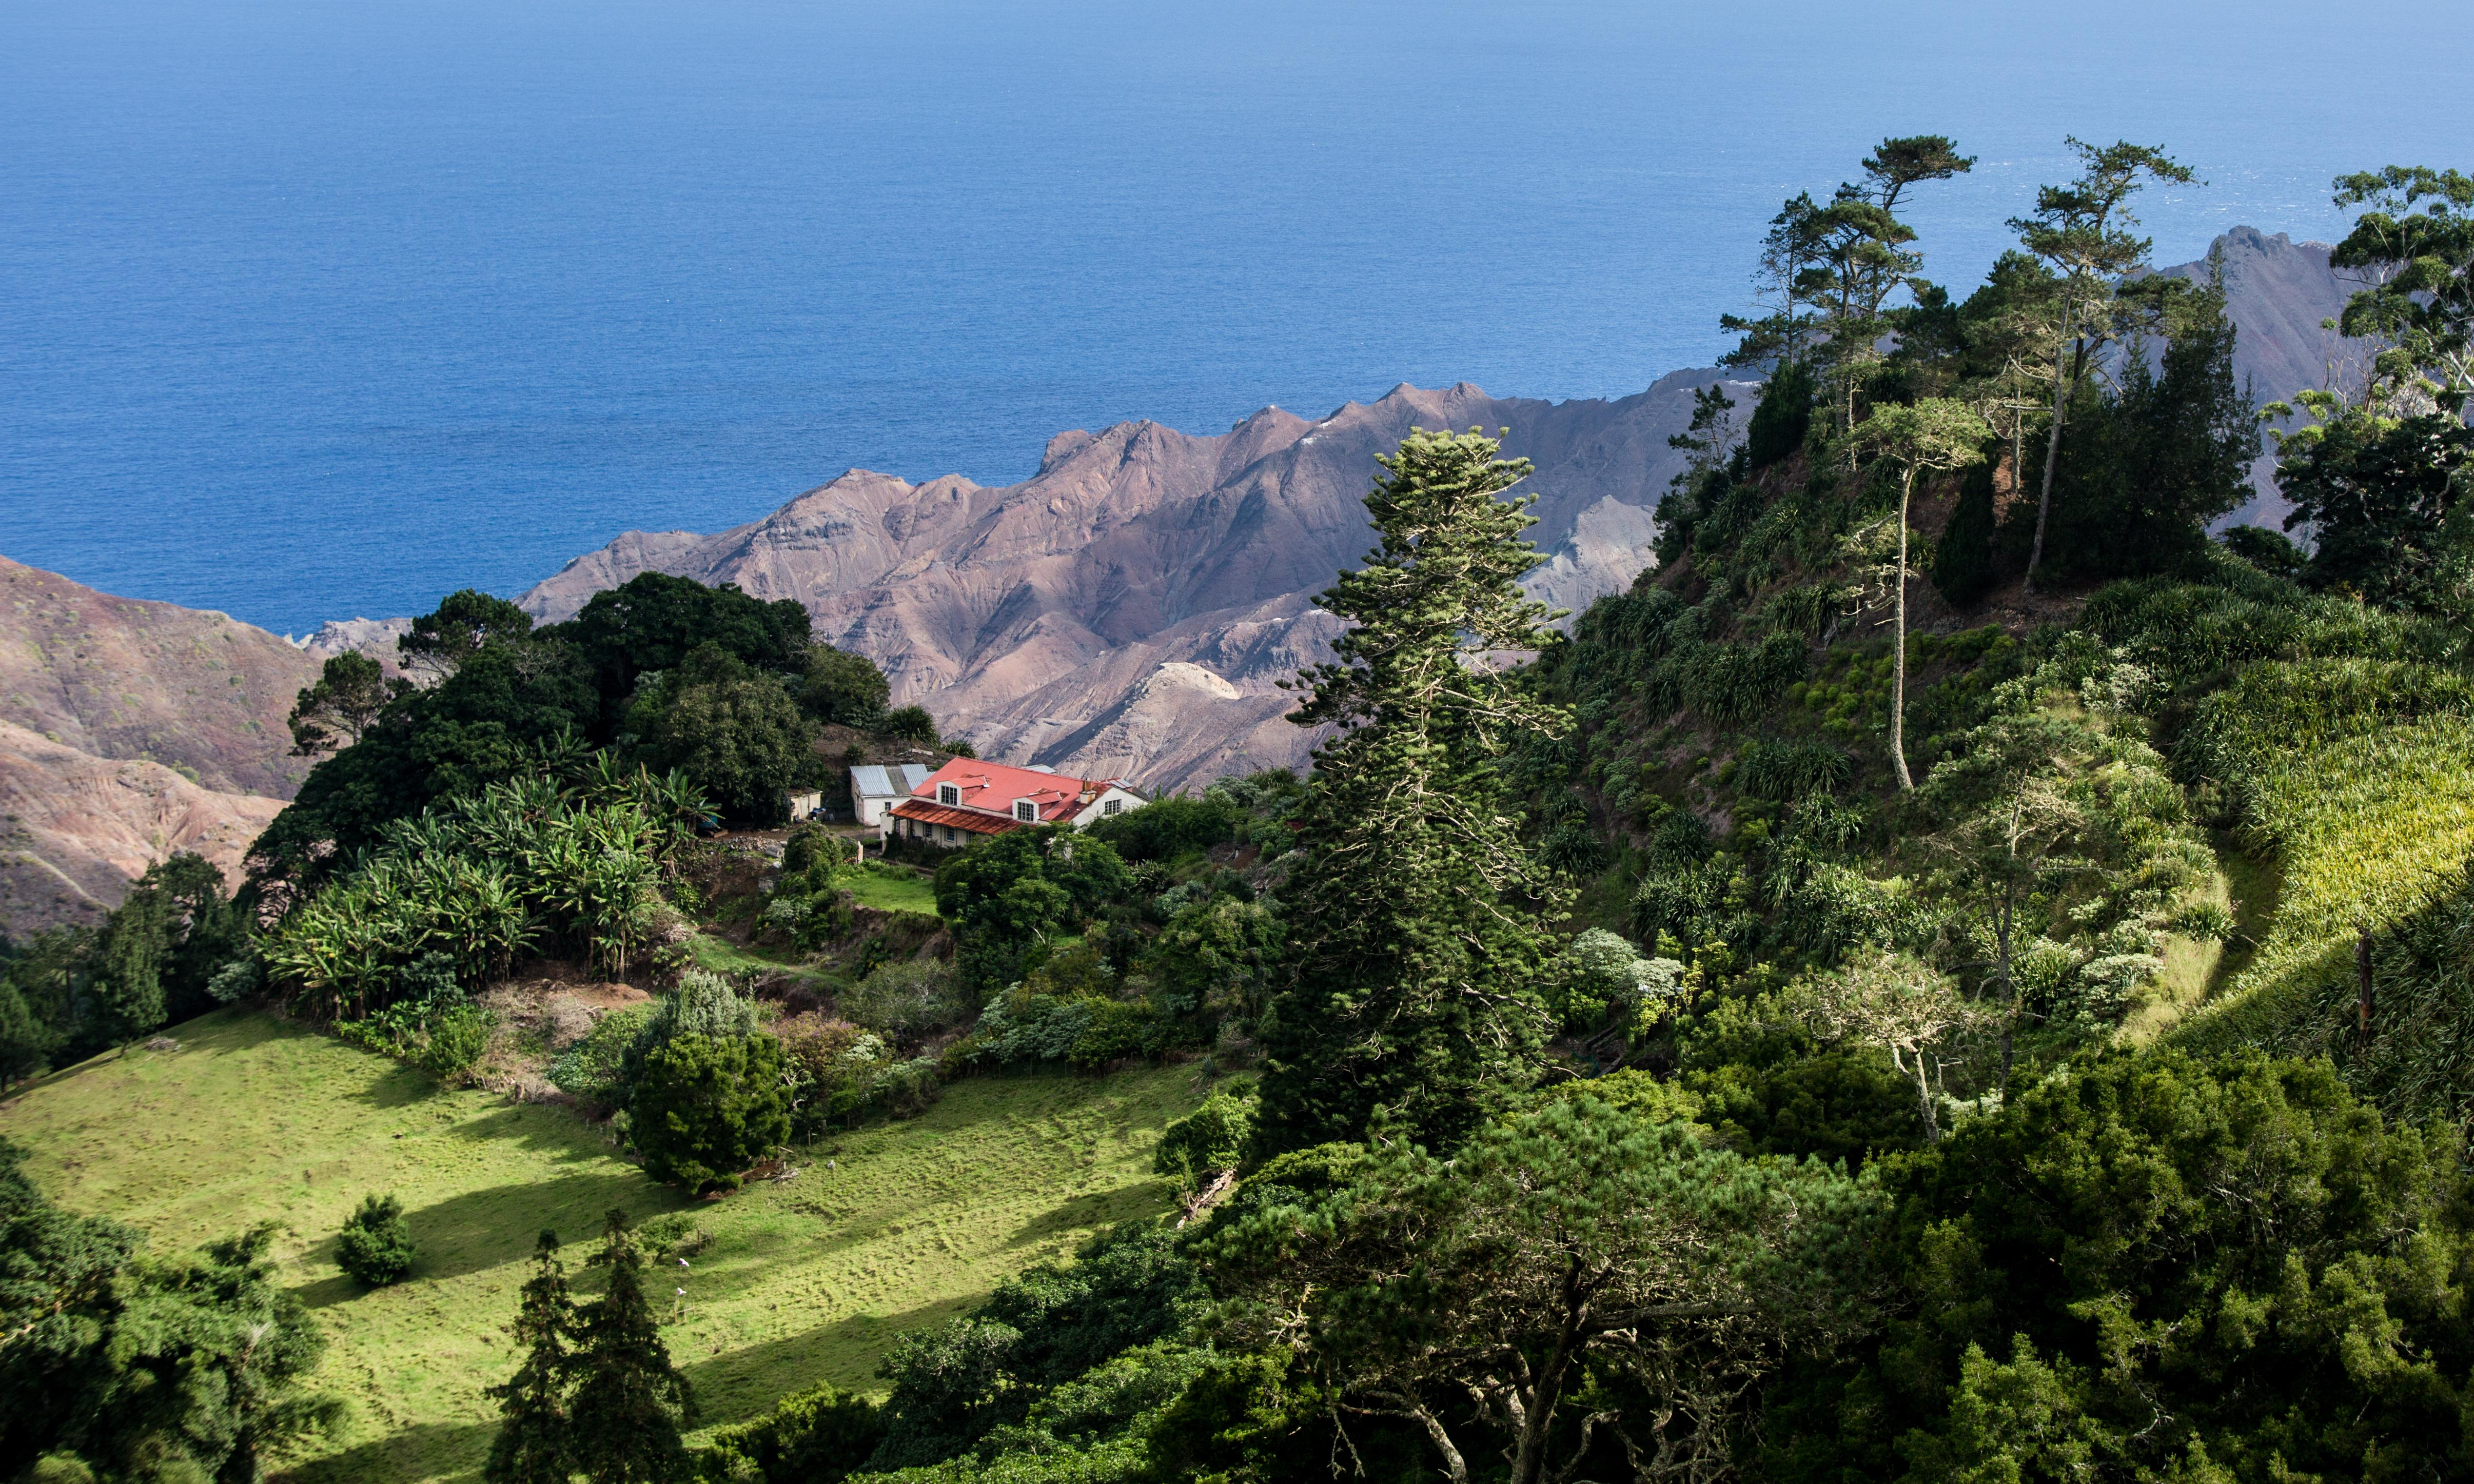 Voyage of discovery to St Helena